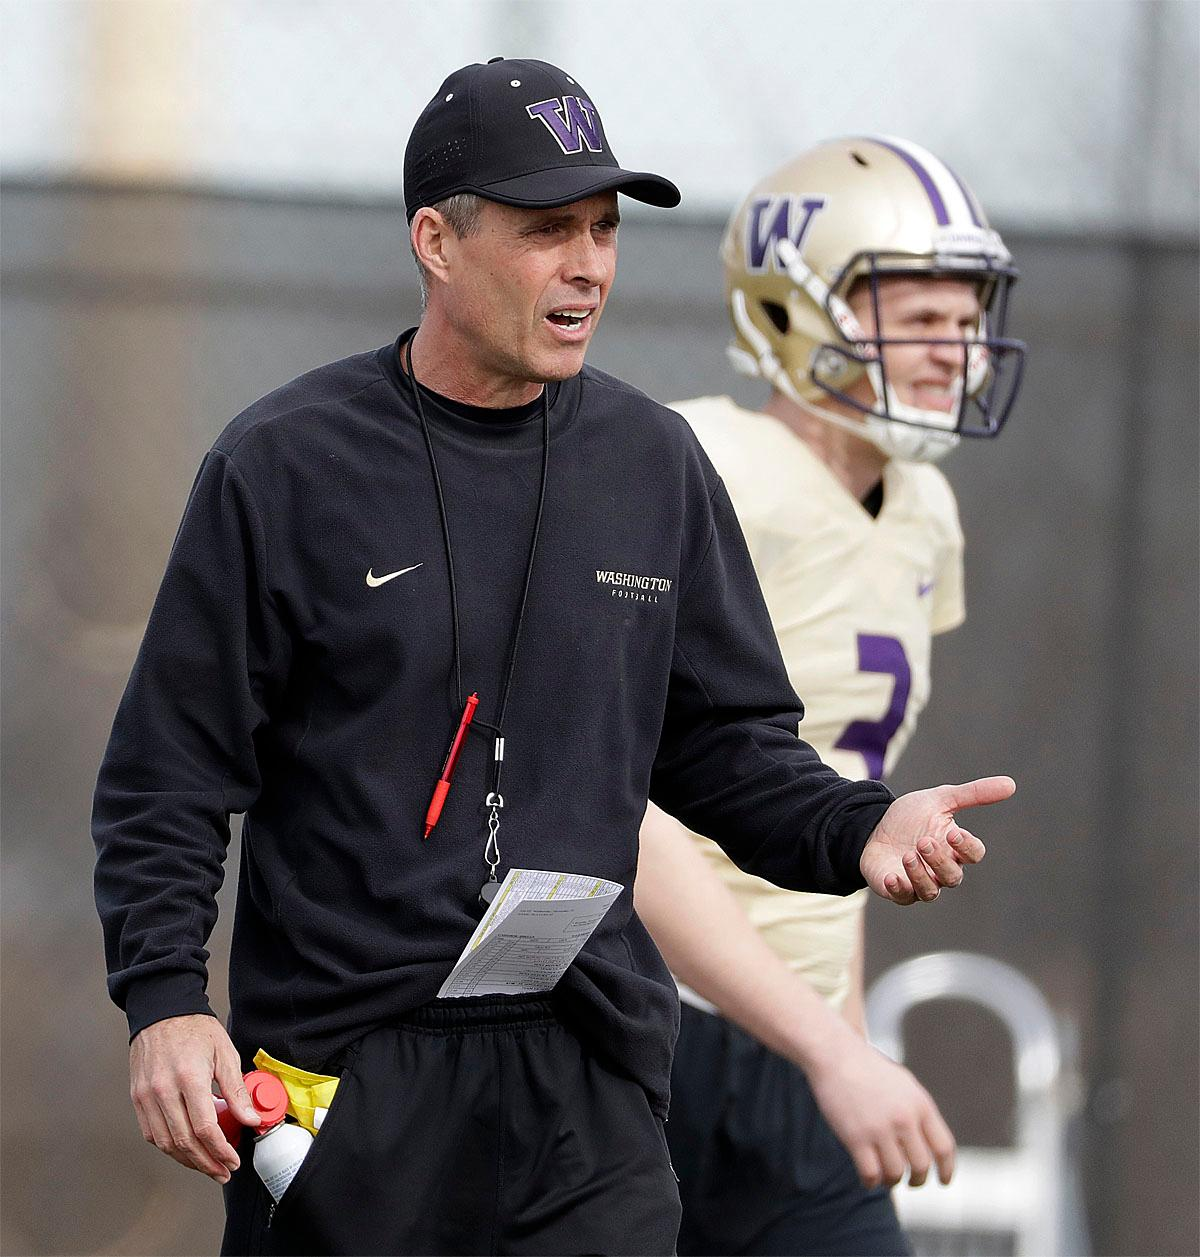 Washington head coach Chris Petersen, left, walks on the field next to quarterback Jake Browning during a Peach Bowl NCAA college football practice in Atlanta, Wednesday, Dec. 28, 2016. Alabama and Washington will face off in the Peach Bowl football game Saturday. (AP Photo/David Goldman)